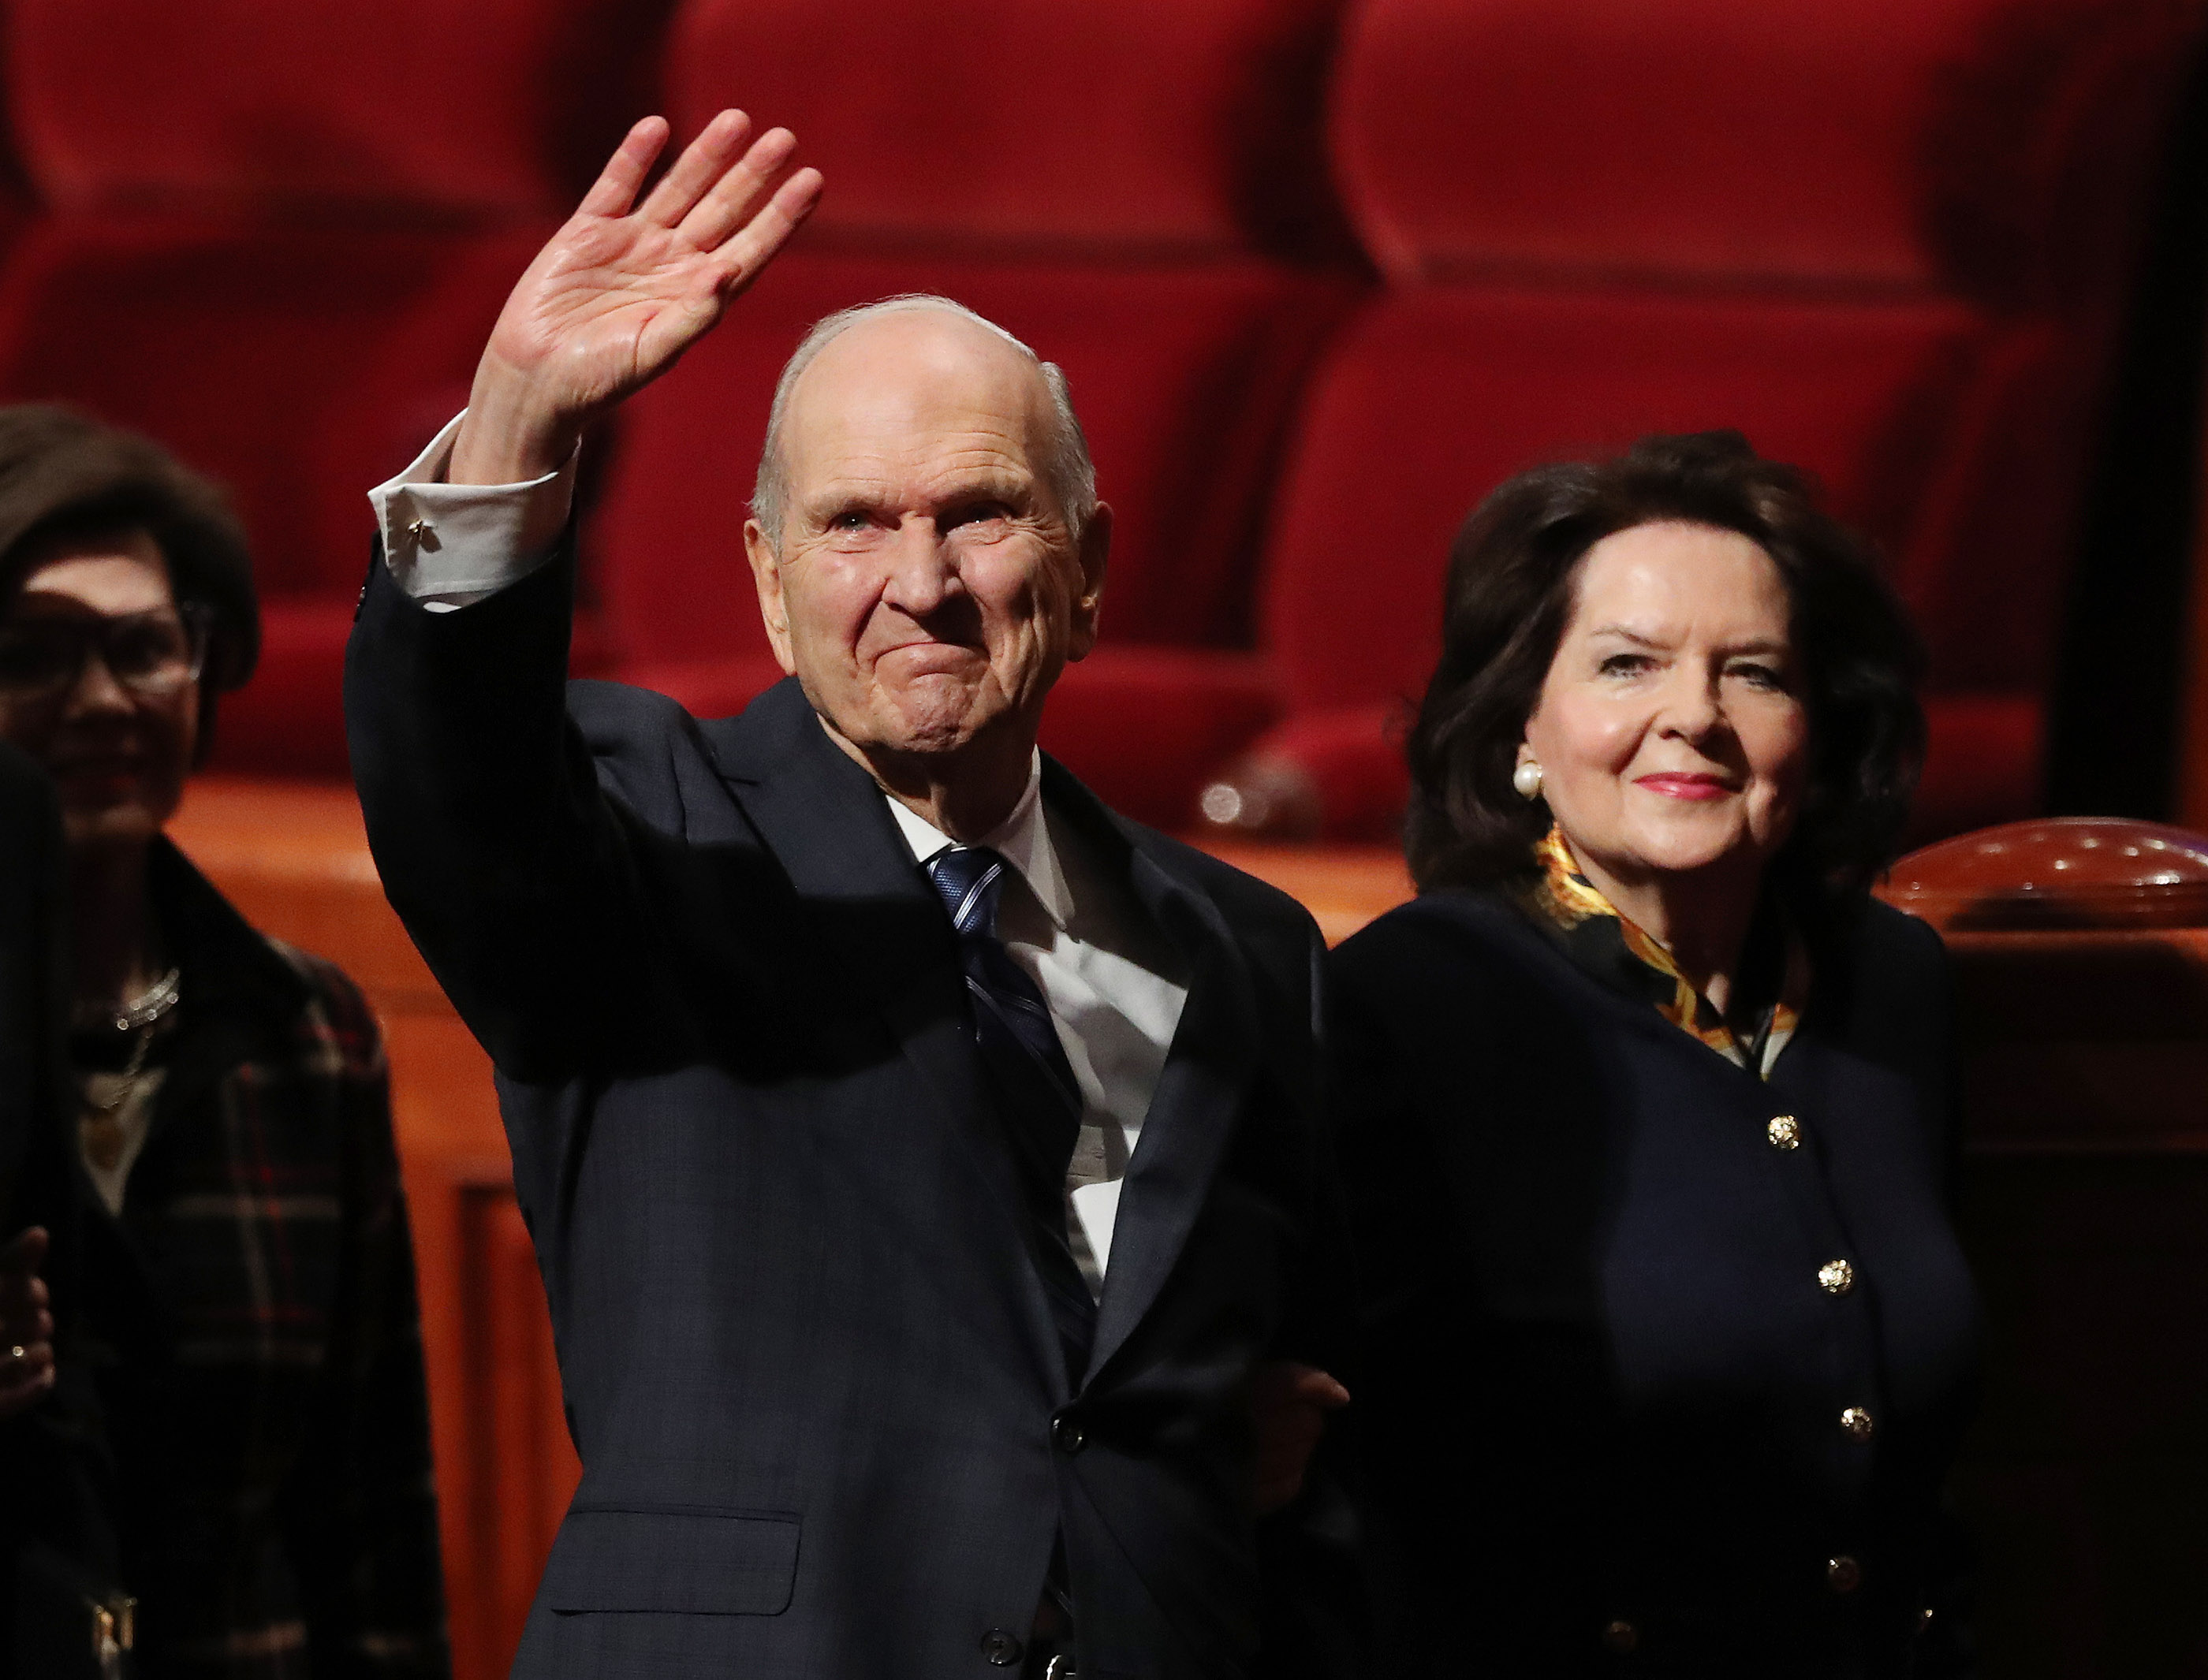 President Russell M. Nelson waves to attendees with his wife, Sister Wendy Nelson, after the Sunday morning session of the 188th Semiannual General Conference of The Church of Jesus Christ of Latter-day Saints in Salt Lake City on Sunday, Oct. 7, 2018.